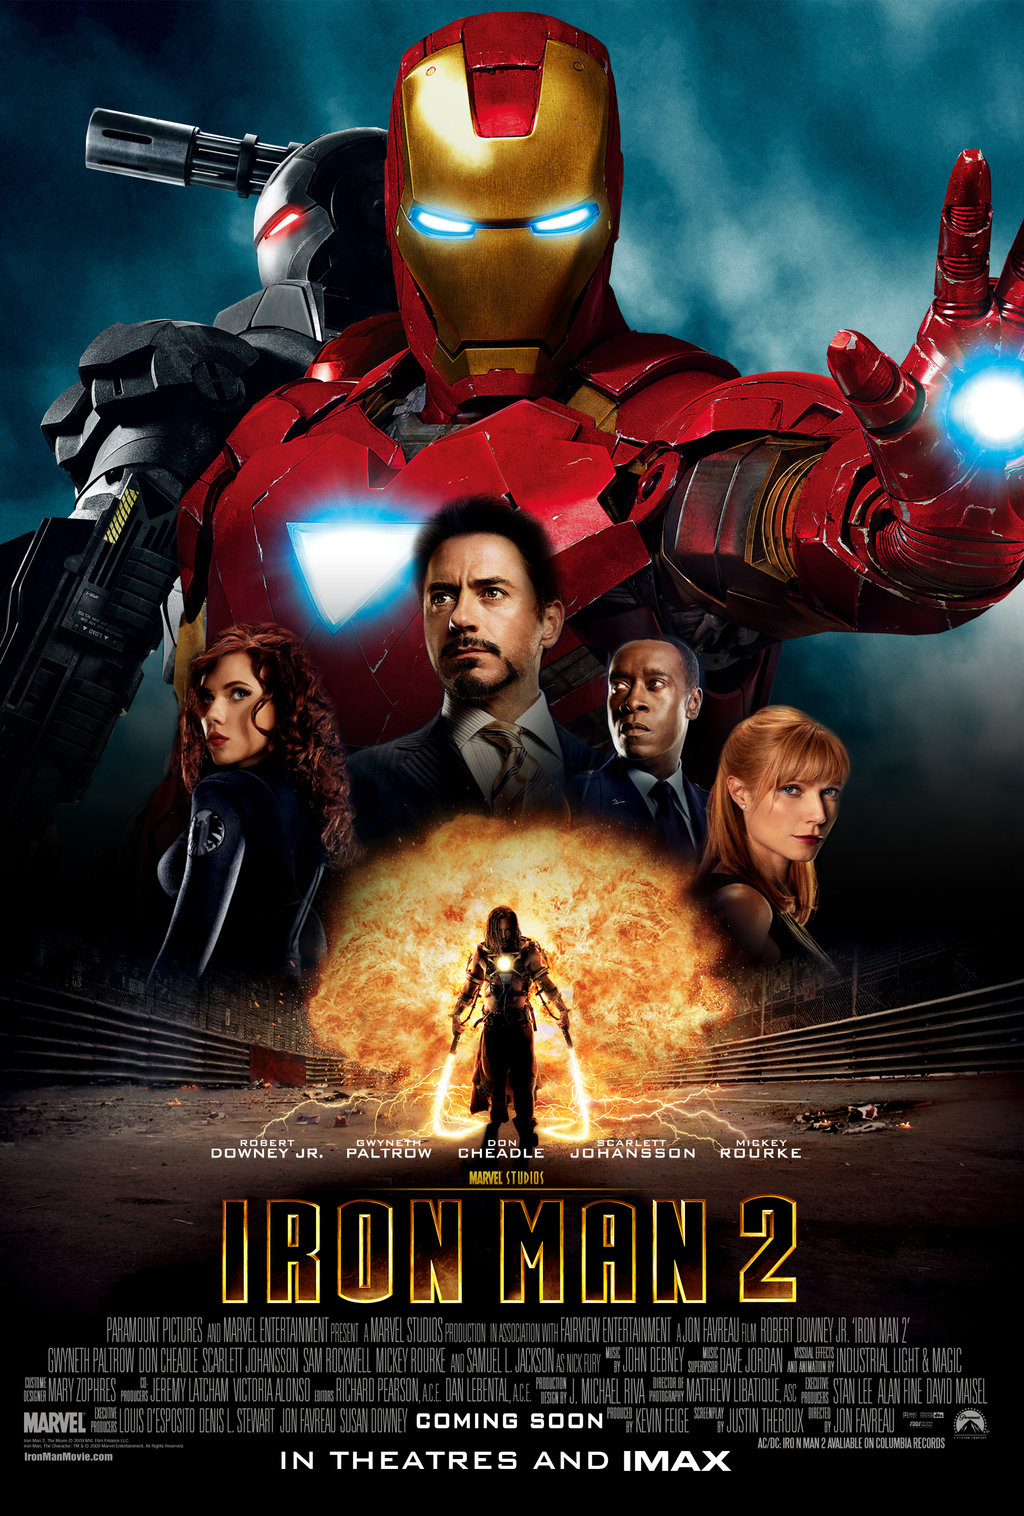 Iron Man 2 - Critique du Film Marvel - Chronique Disney